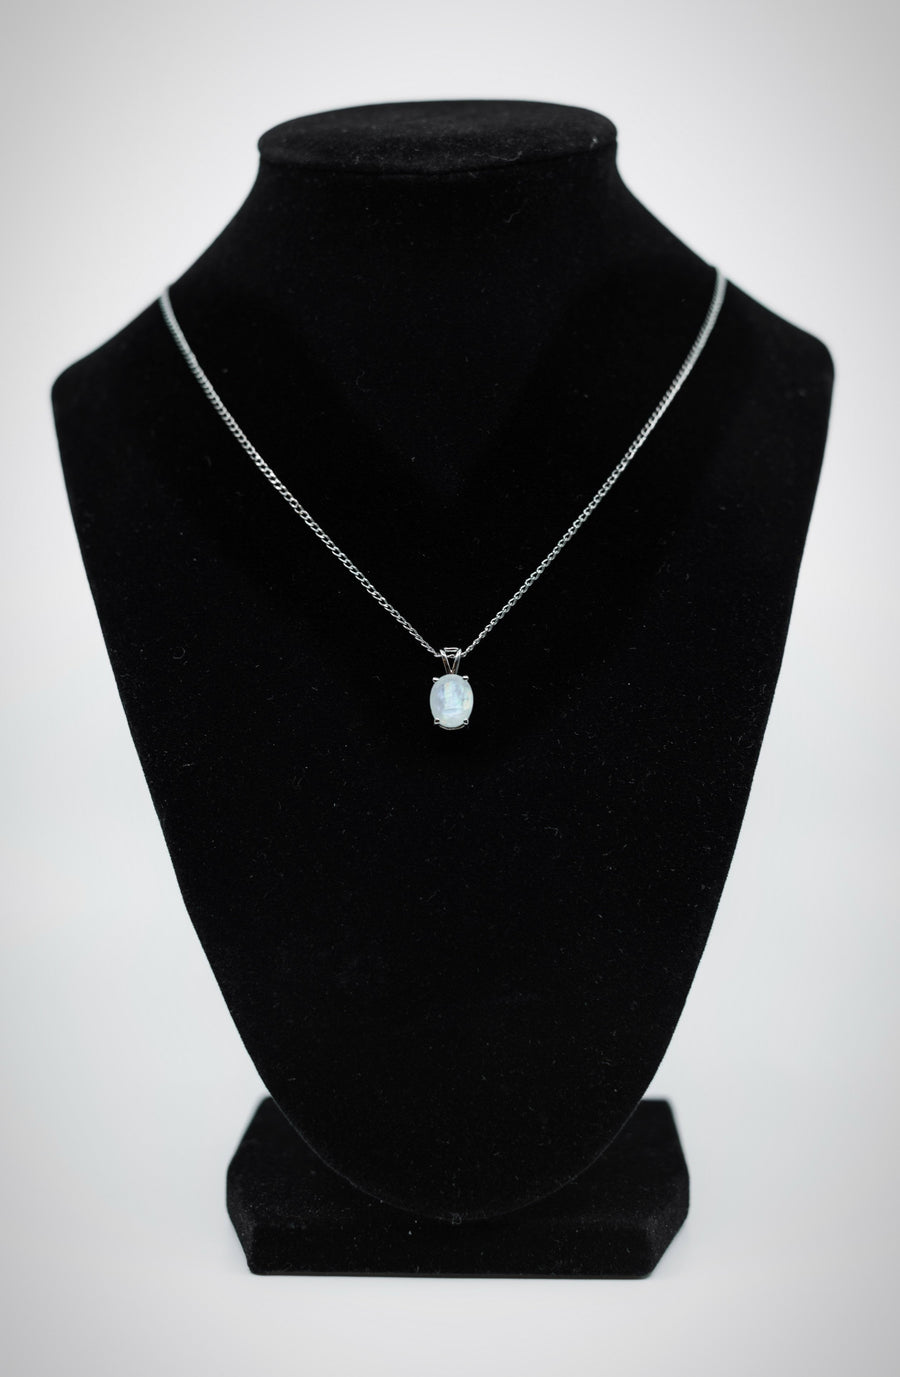 Frosted Drop Pendant with White Sterling Silver